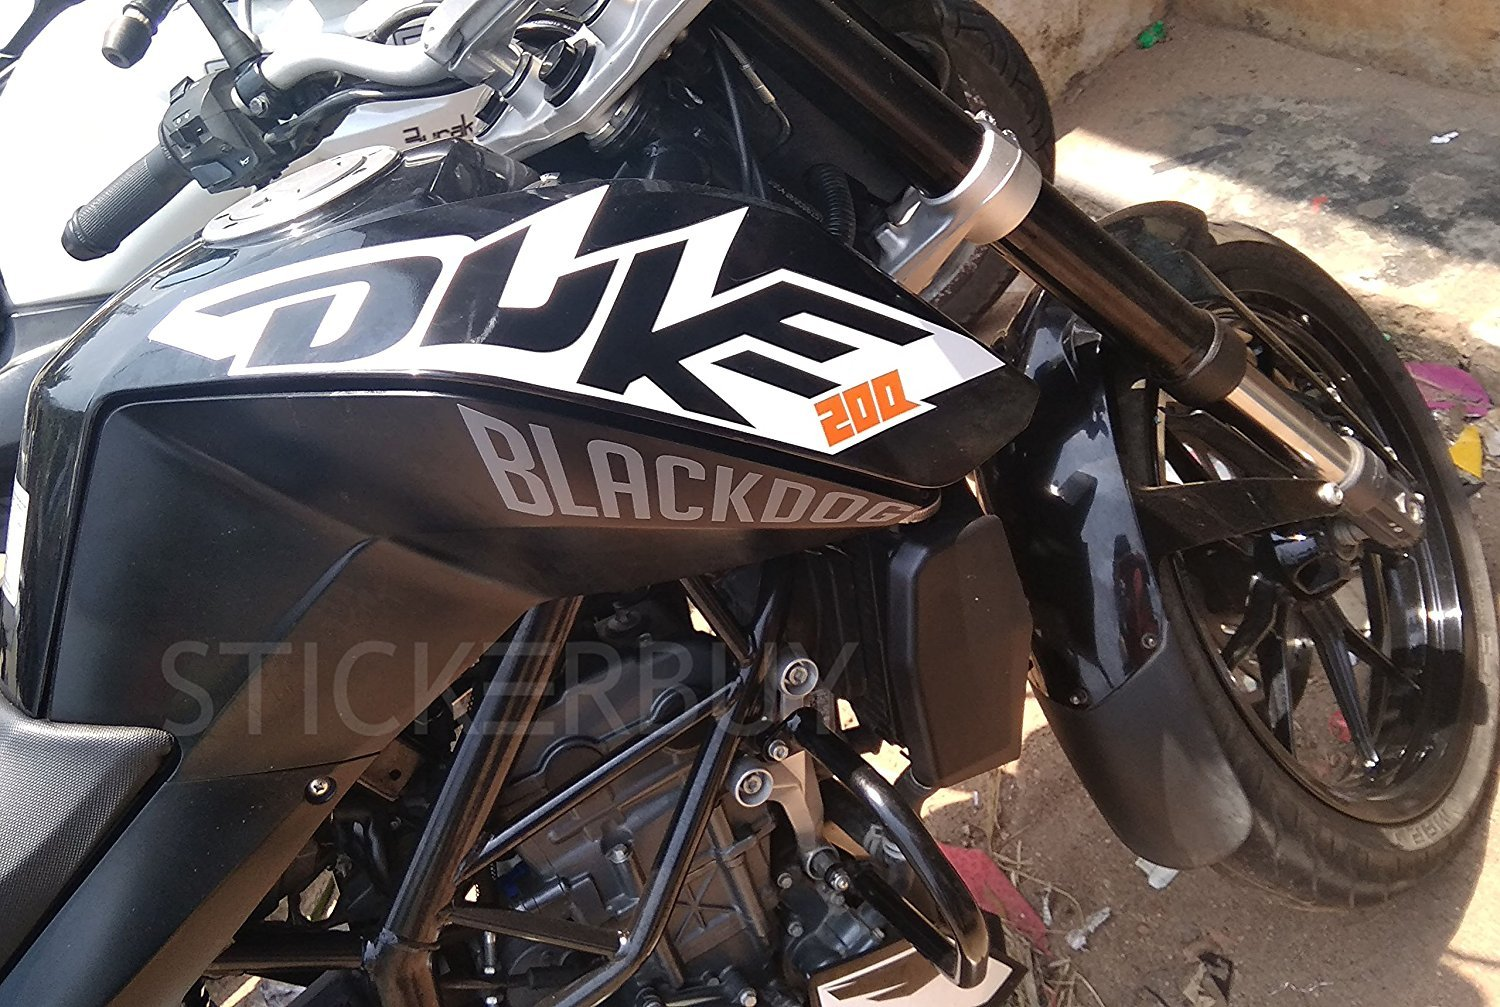 Stickerbuy blackdog new creative bike sticker for ktm duke 200 latest design bike styling decorative recent decal grey amazon in car motorbike